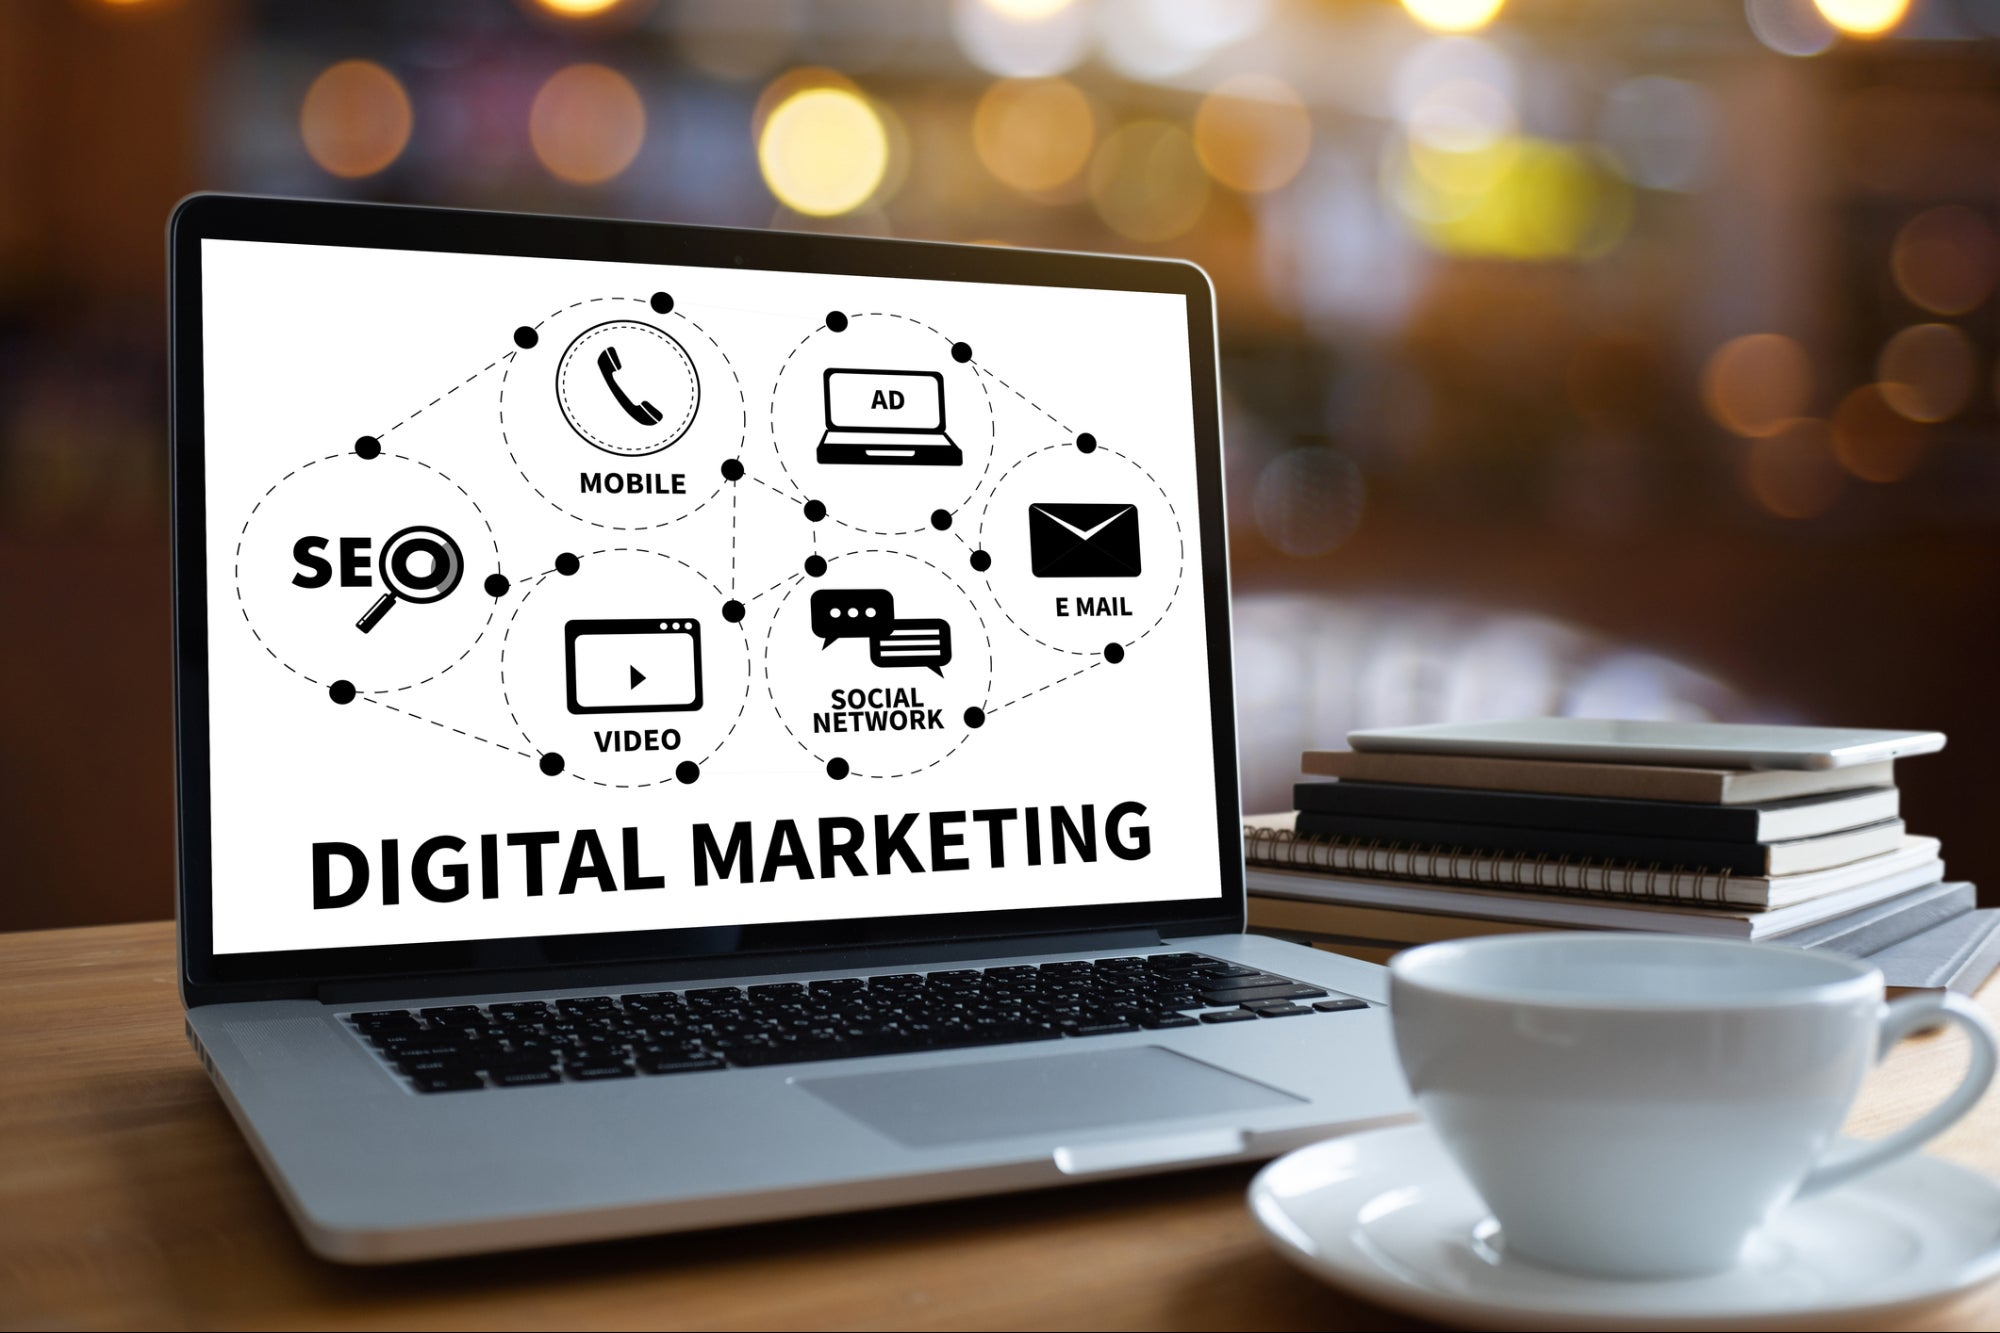 Internet marketing 5 Ways a Digital Marketer Can Supercharge Your Online Outreach